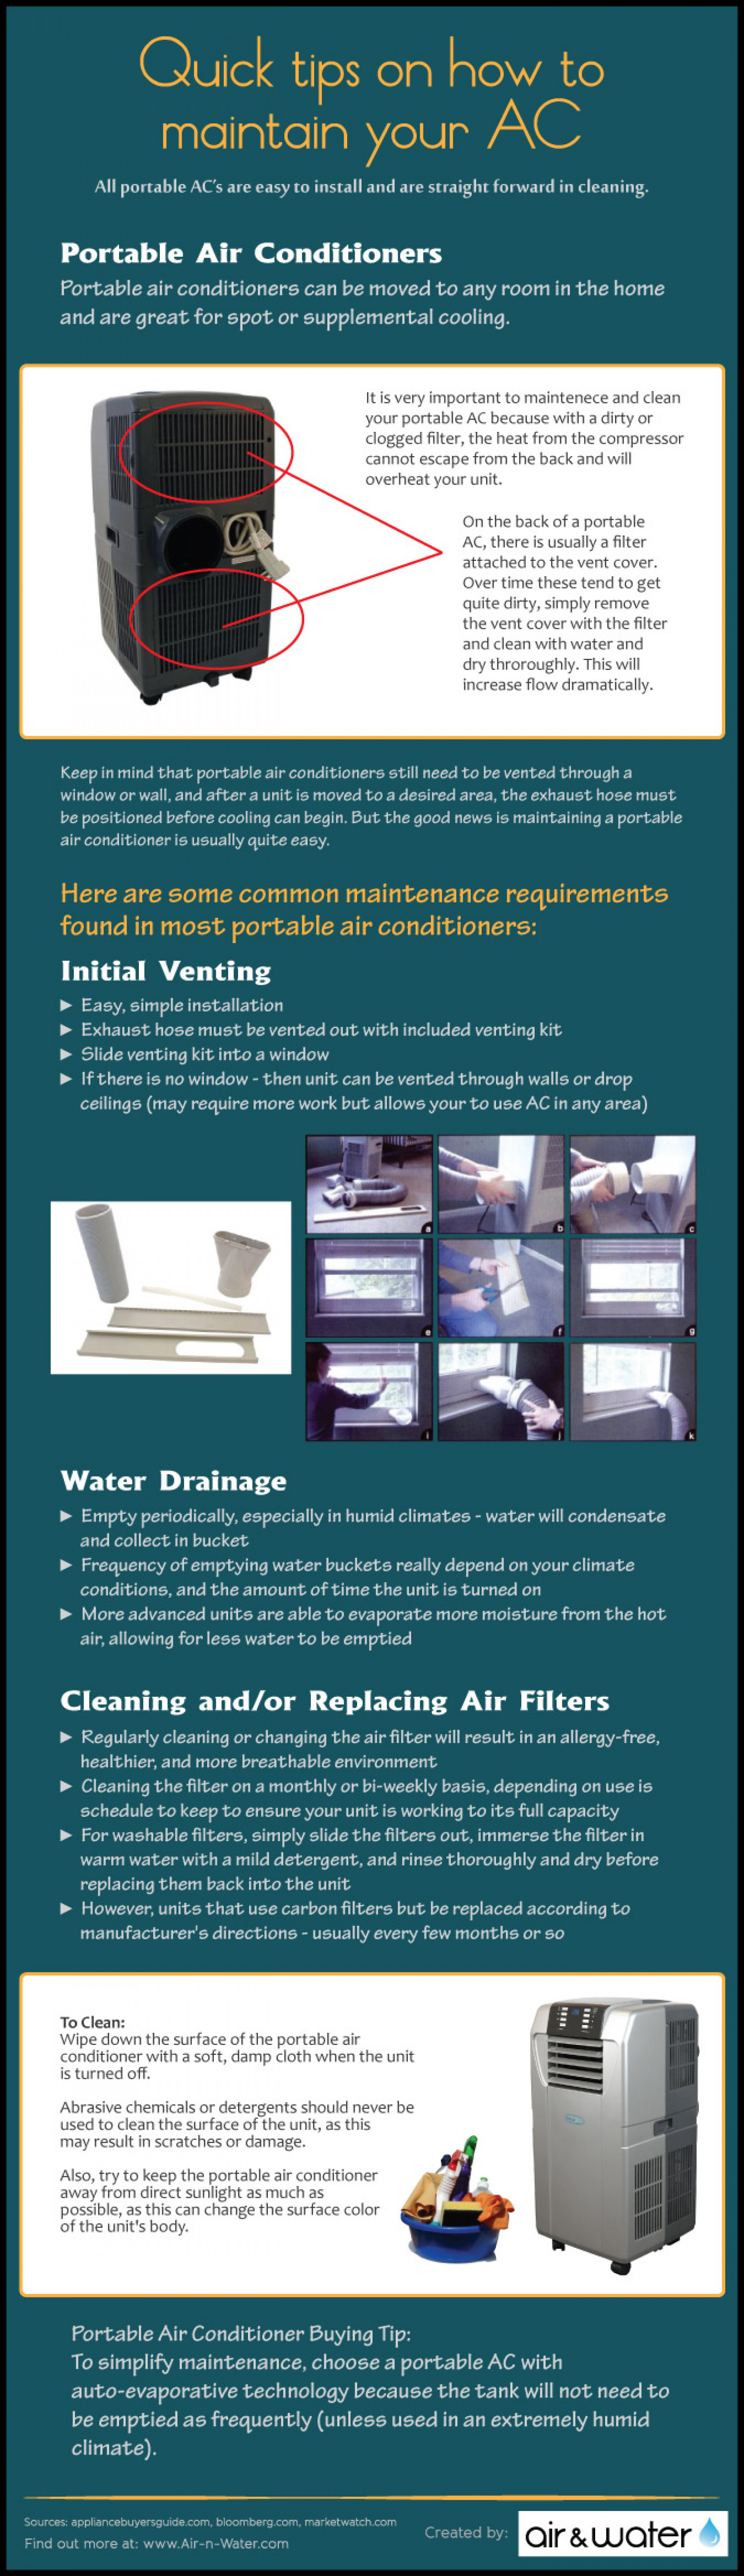 How to Maintain Your Portable AC Infographic